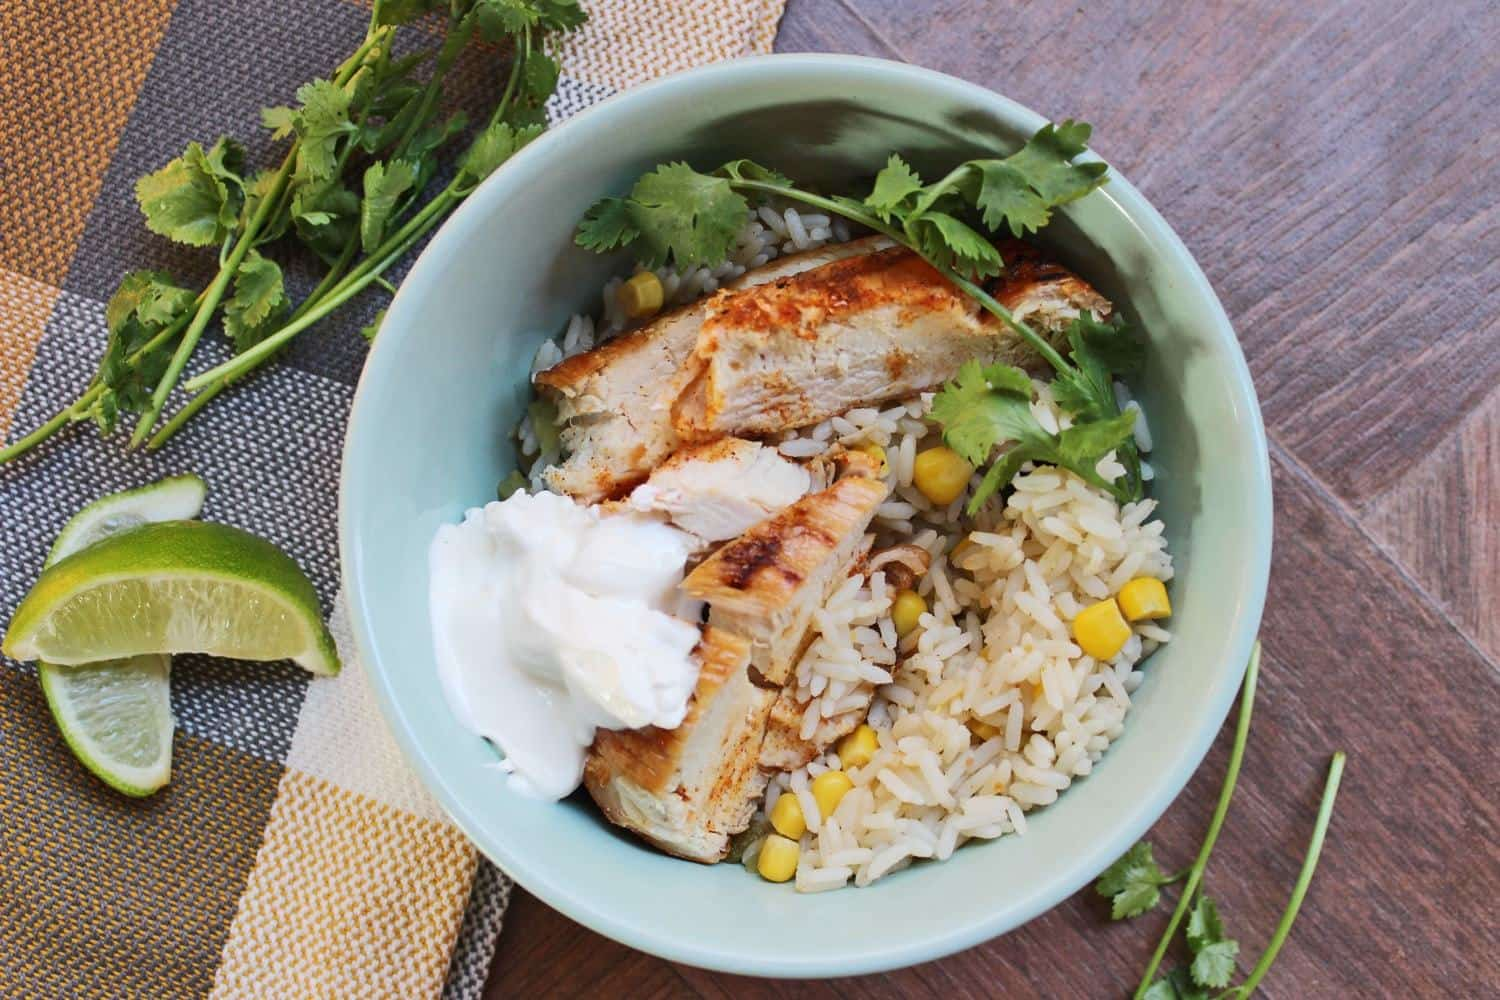 Easy Tex-Mex Chicken Bowls | Making Kitchen Memories With the Kids